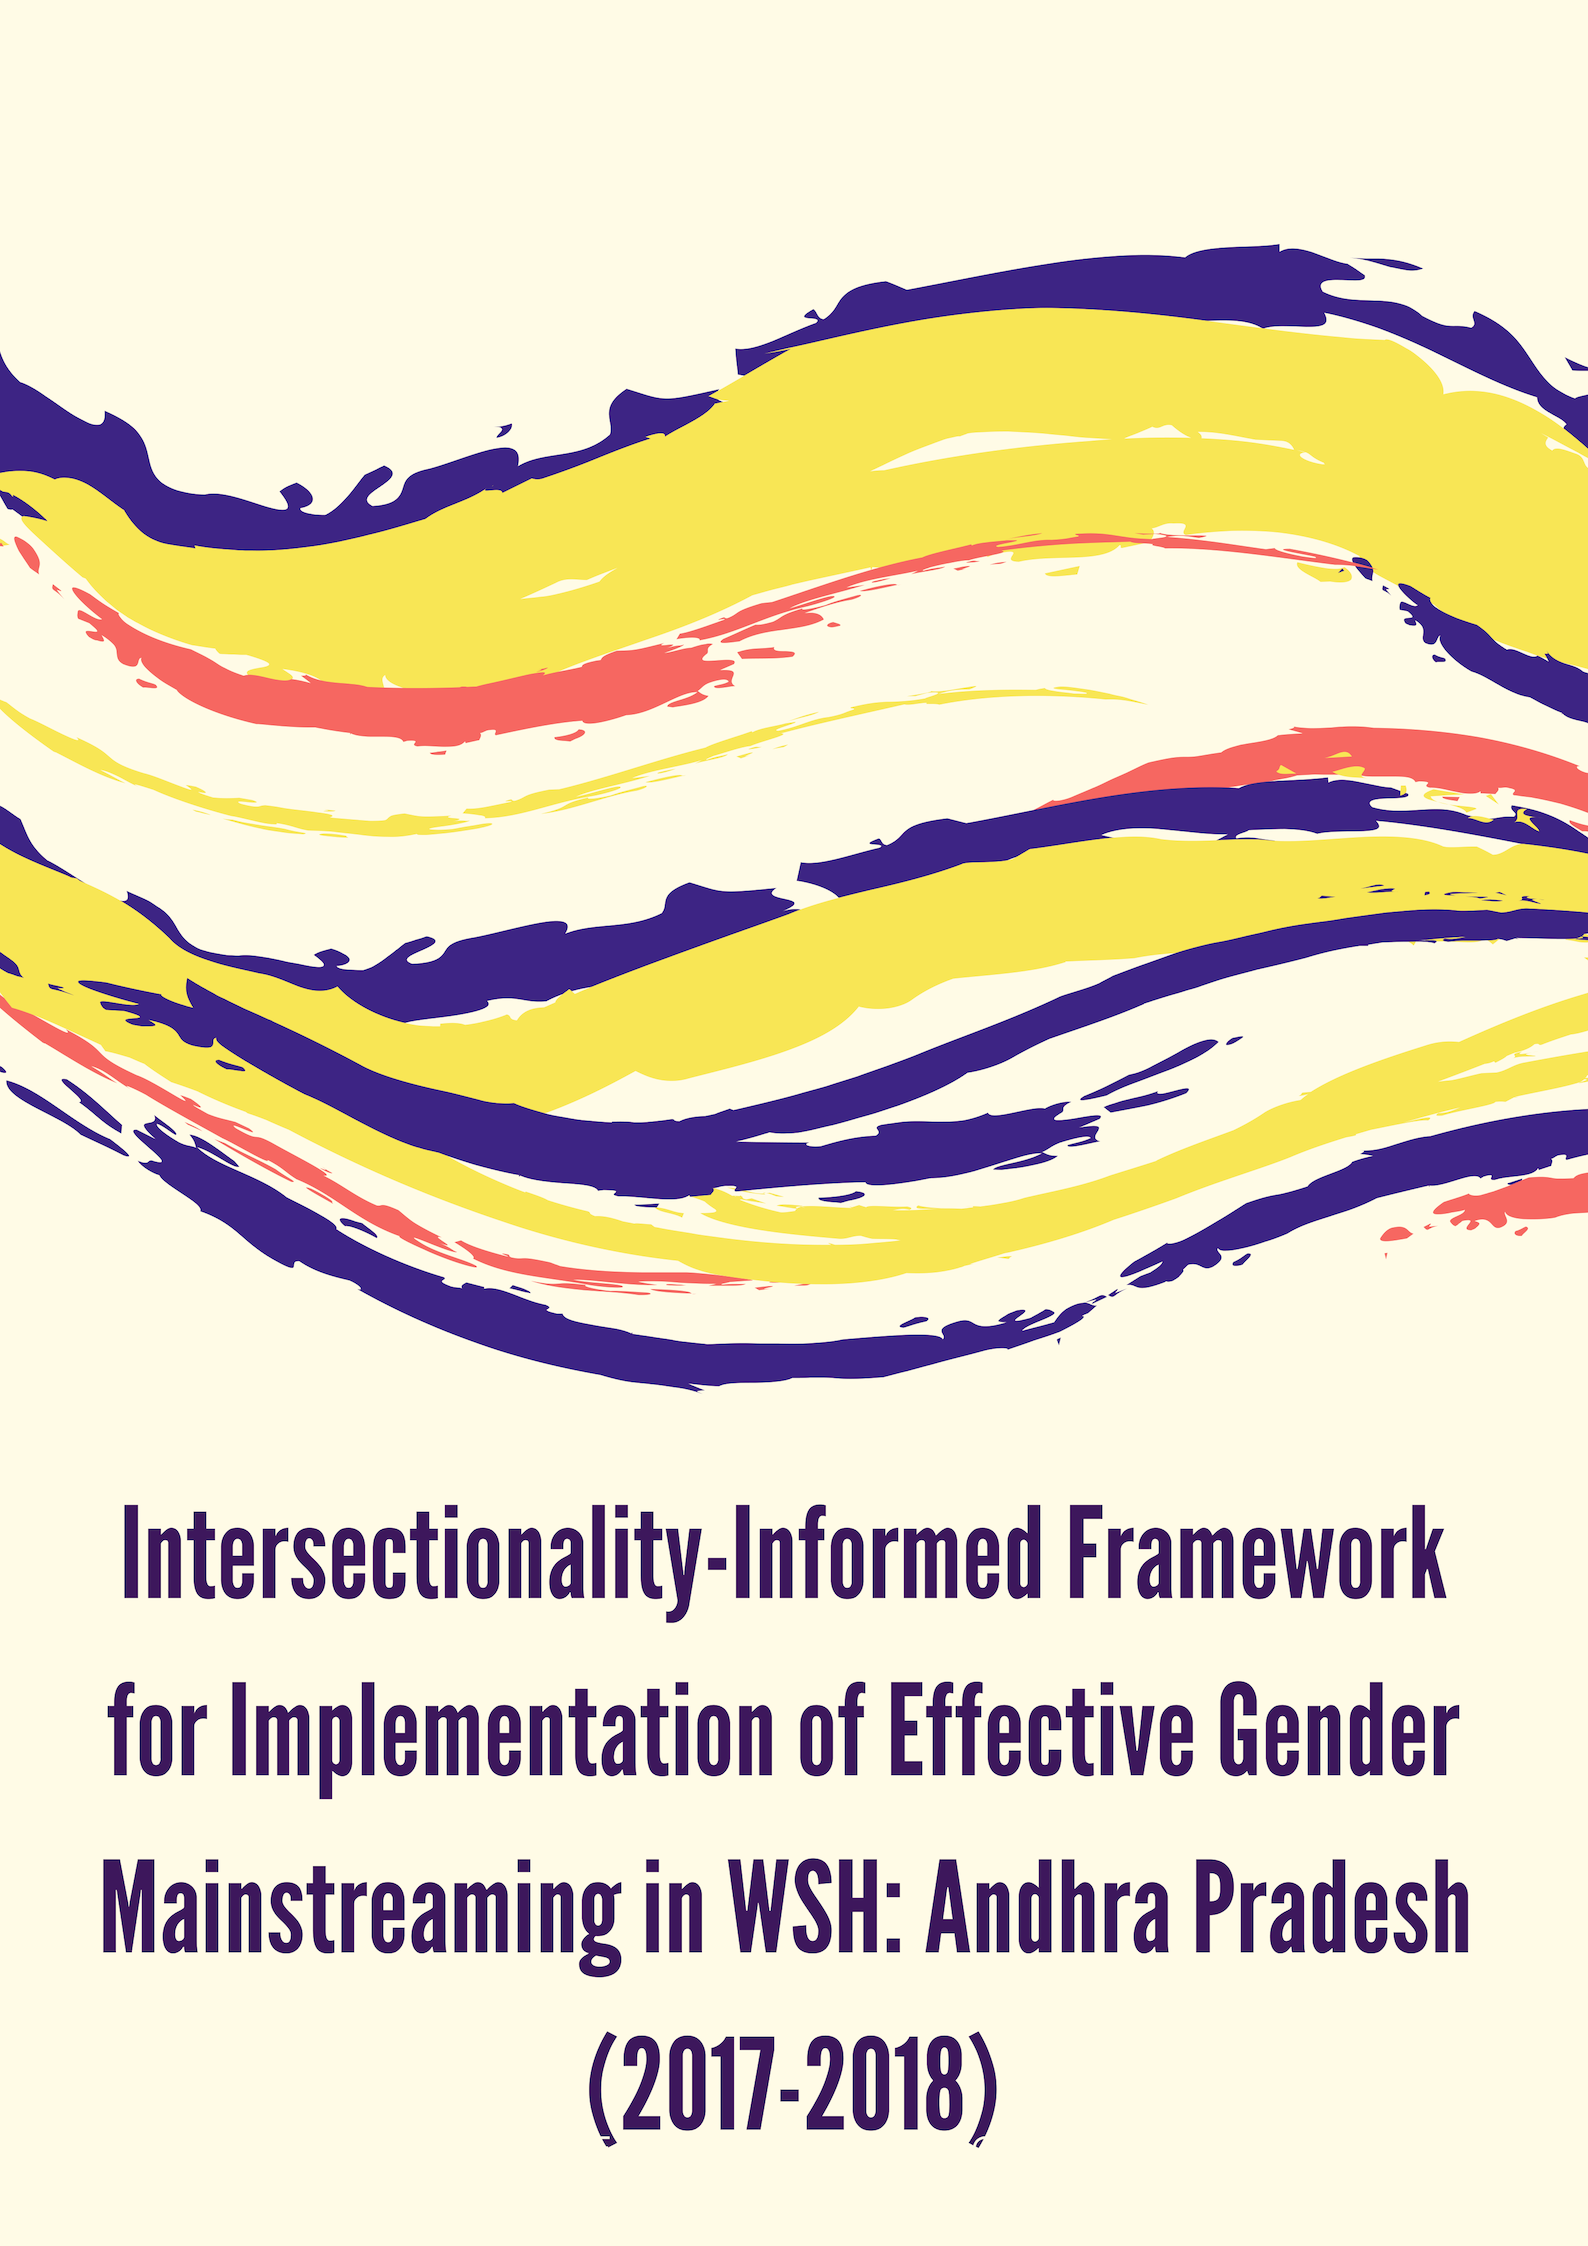 Intersectionality-Informed Framework for Implementation of Effective Gender Mainstreaming in WSH: Andhra Pradesh